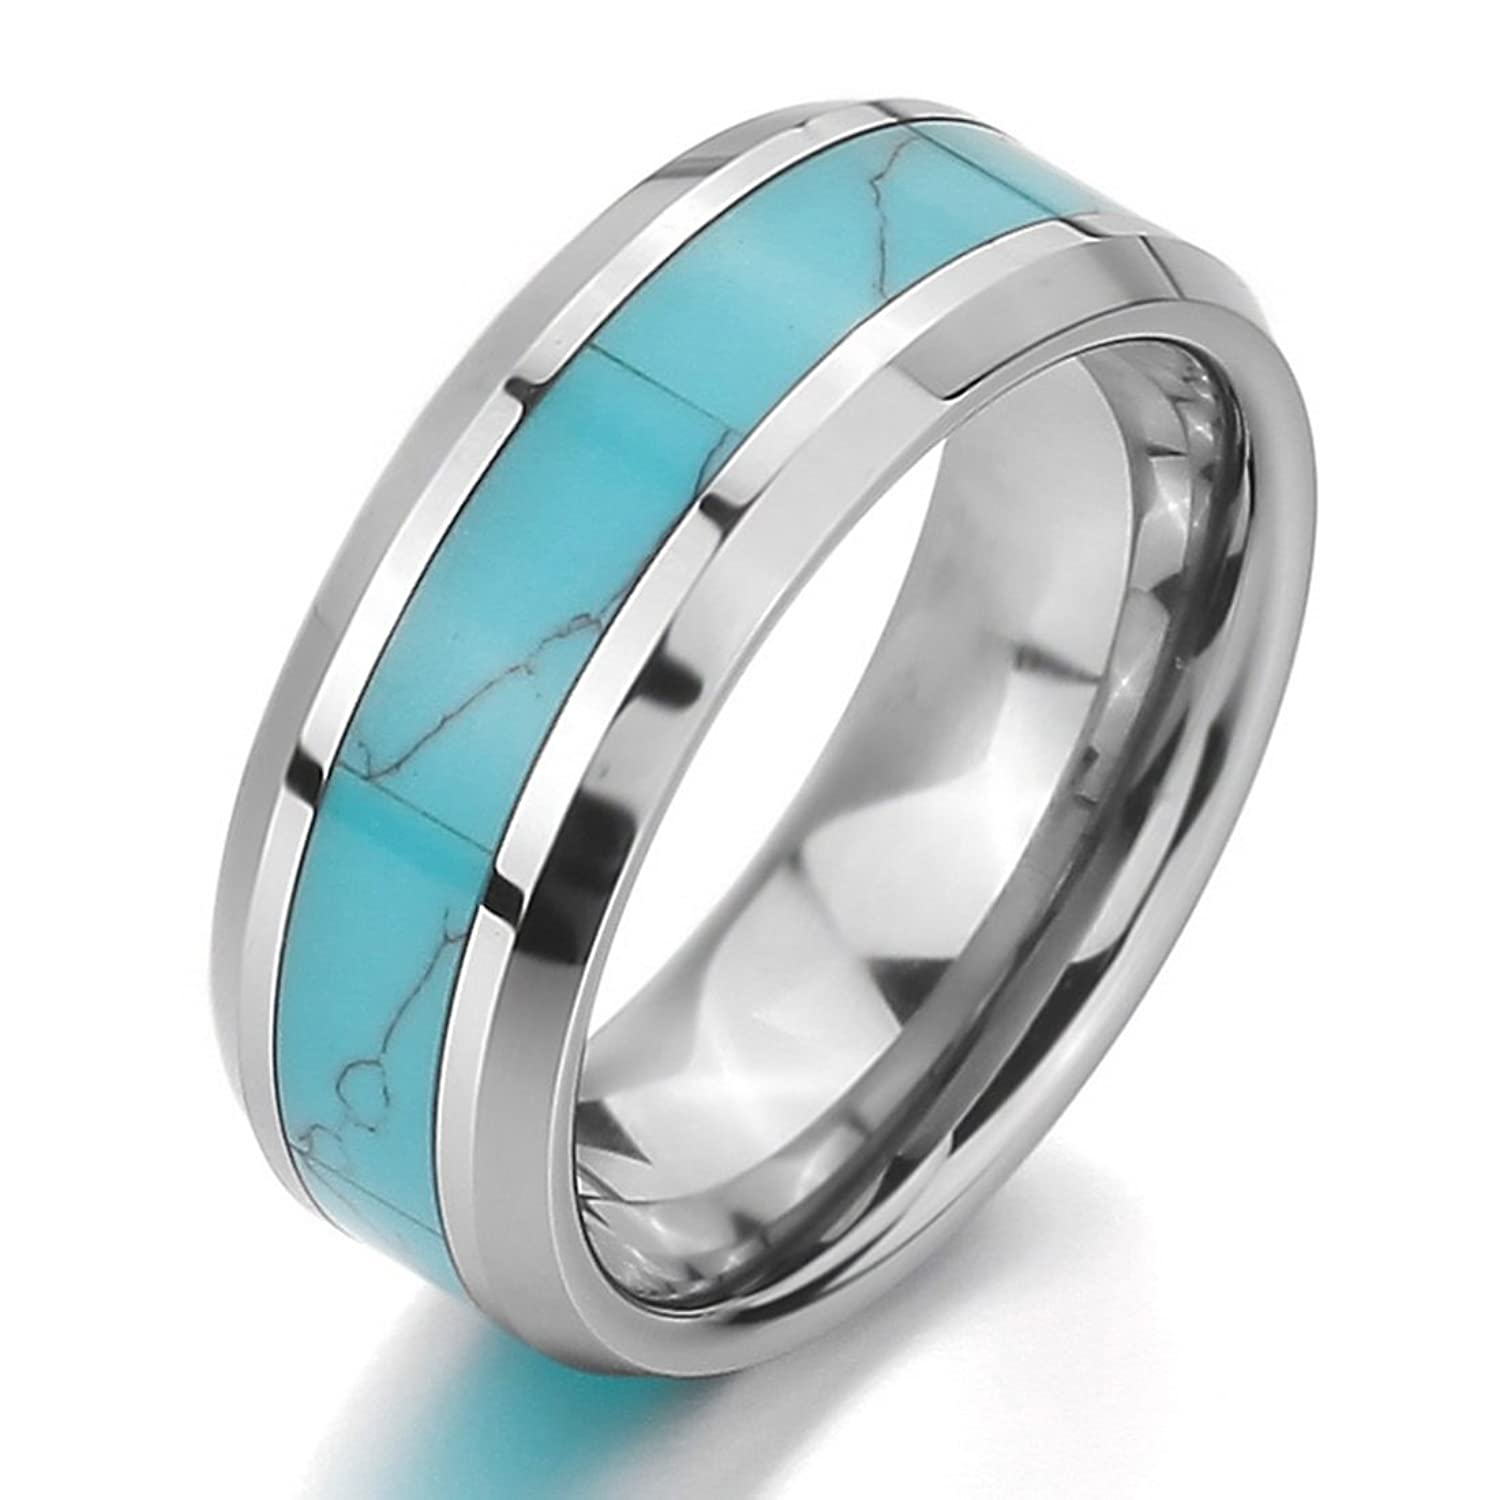 amazoncom inblue men womens tungsten ring band simulated turquoise silver tone blue comfort fit wedding tungsten rings for women jewelry - Turquoise Wedding Rings